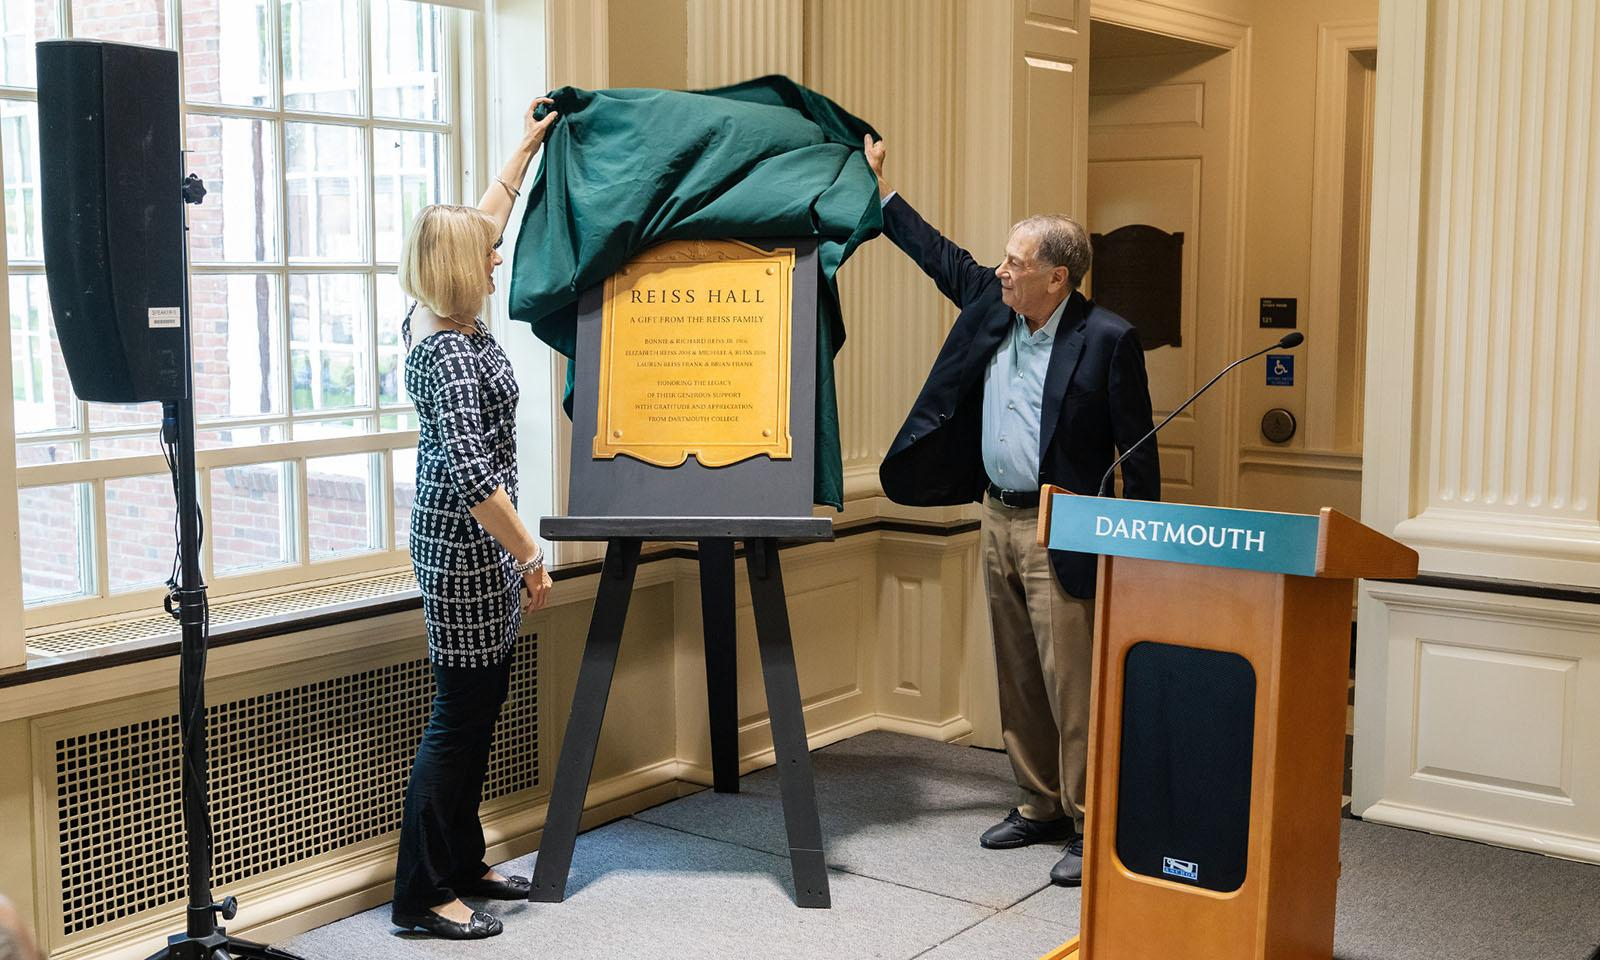 Two people unveil a sign on an easel